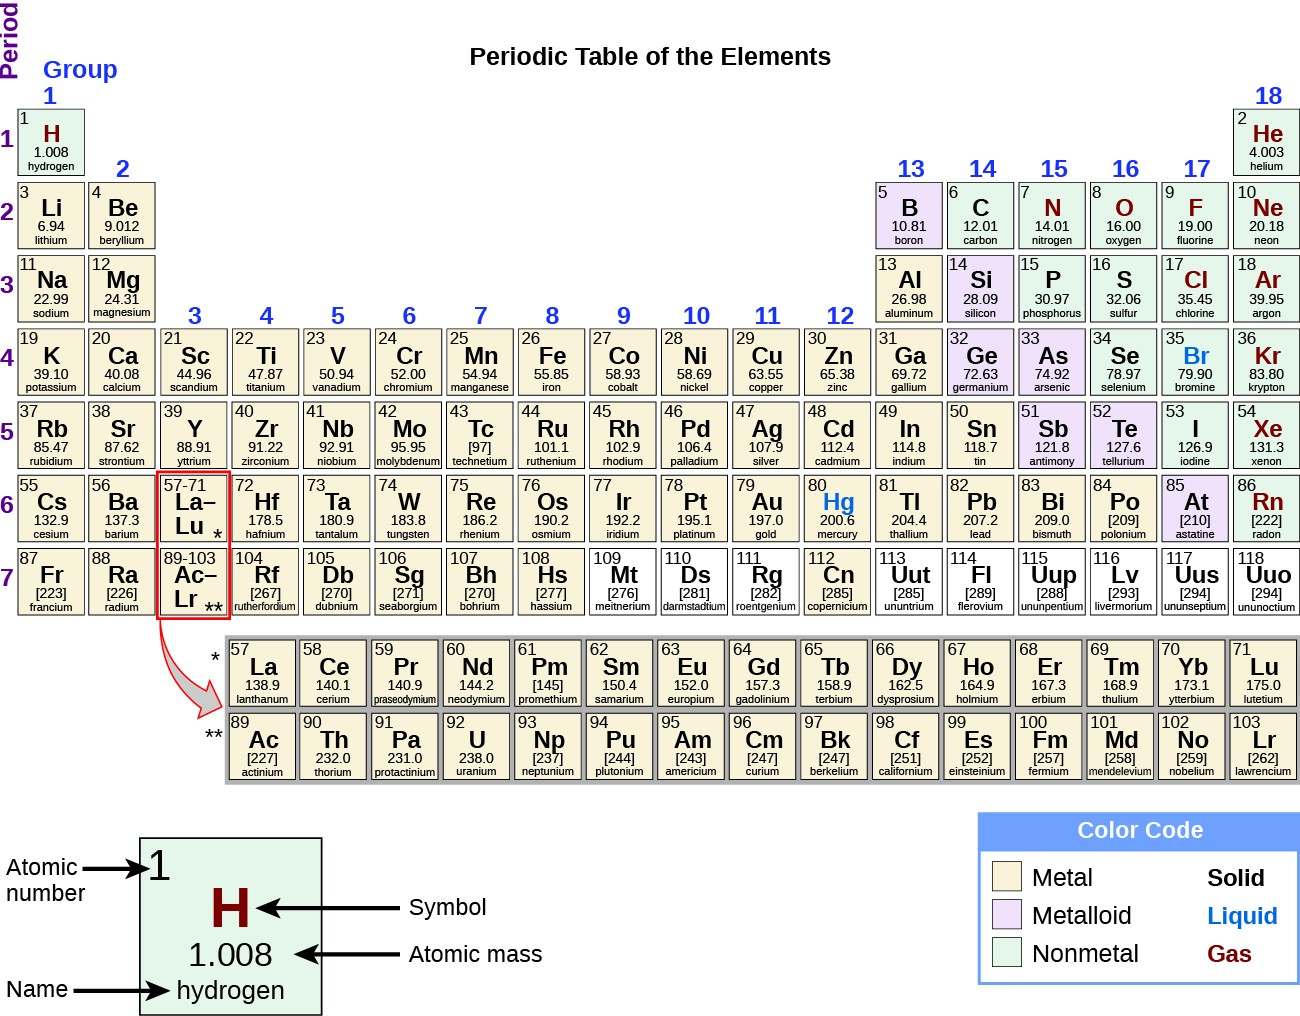 The periodic table chemistry for majors the periodic table of elements is shown the 18 columns are labeled group gamestrikefo Images